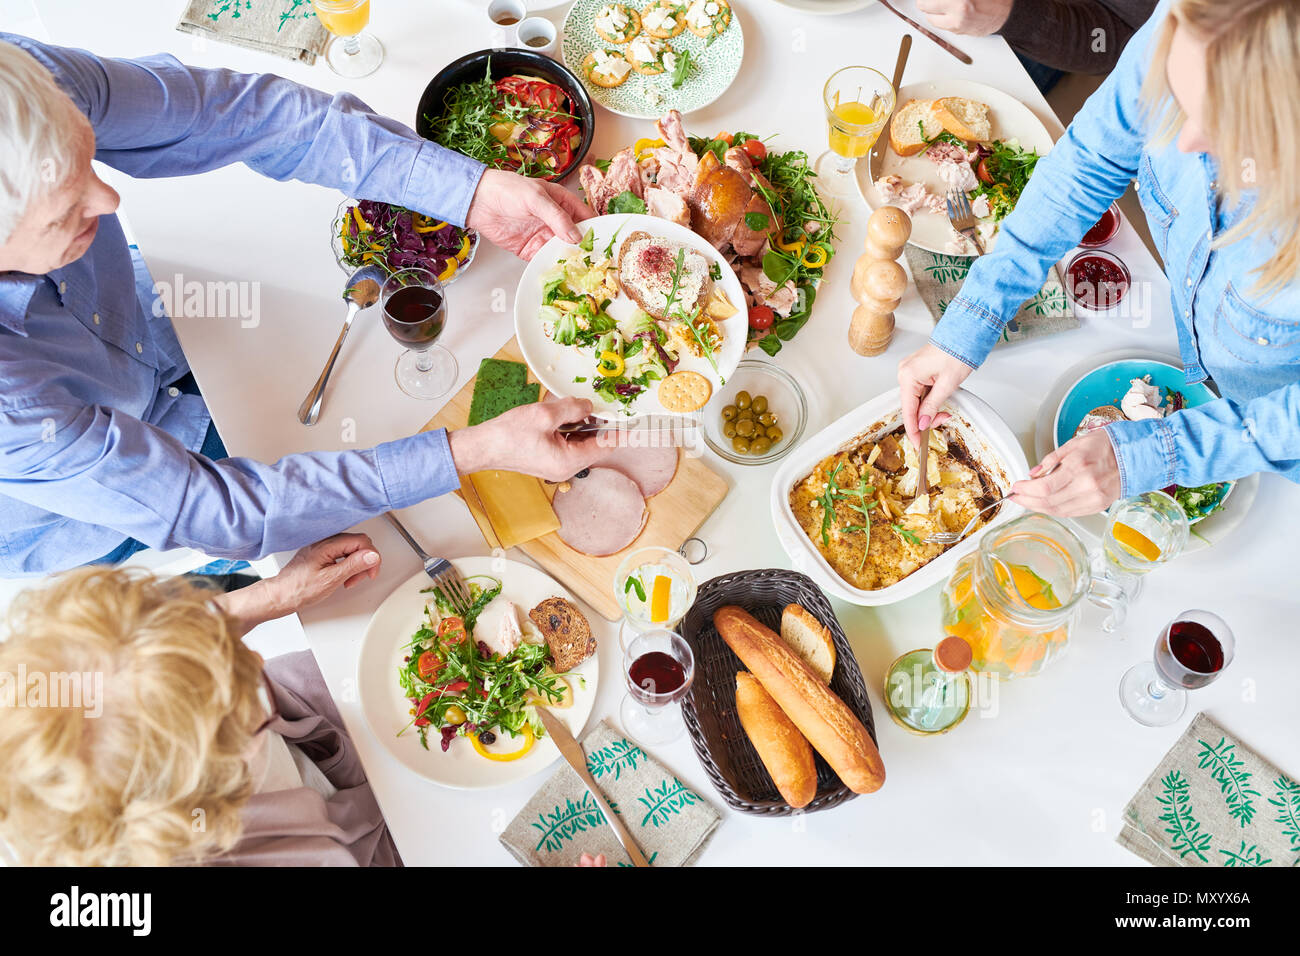 Top view of big happy family sitting at dinner table enjoying delicious homemade food during festive celebration and handing plates across table - Stock Image